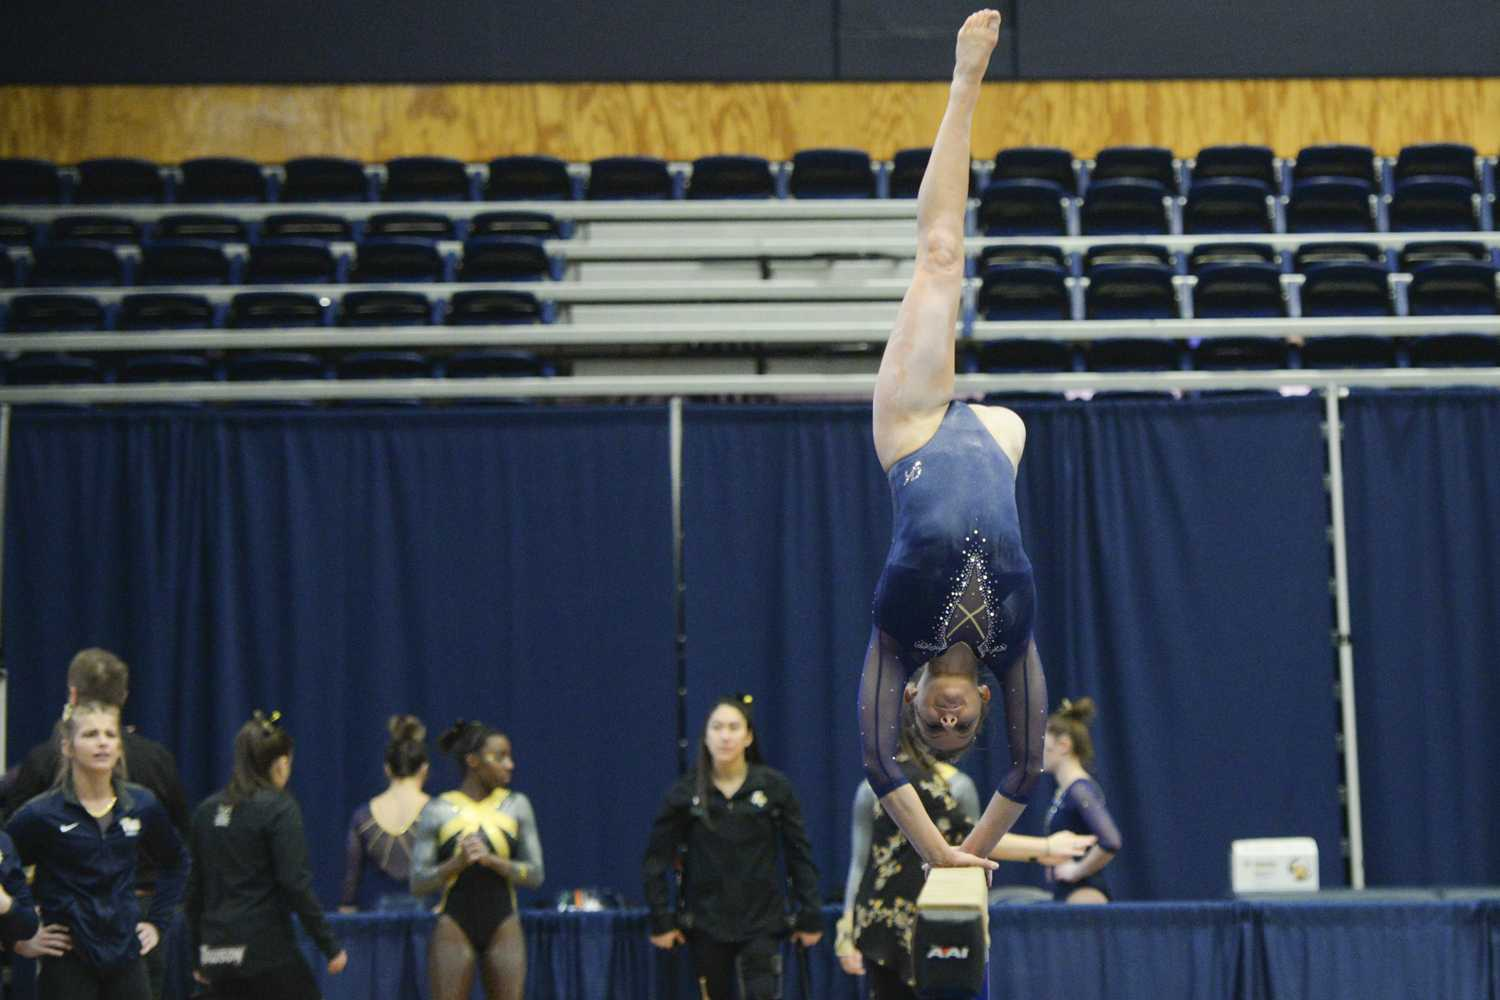 Catie Conrad, a senior, was the leading gymnast on bars for Pitt's gymnastics team this year. Pictured above is Conrad on beams. (Photo by John Hamilton | Managing Editor)